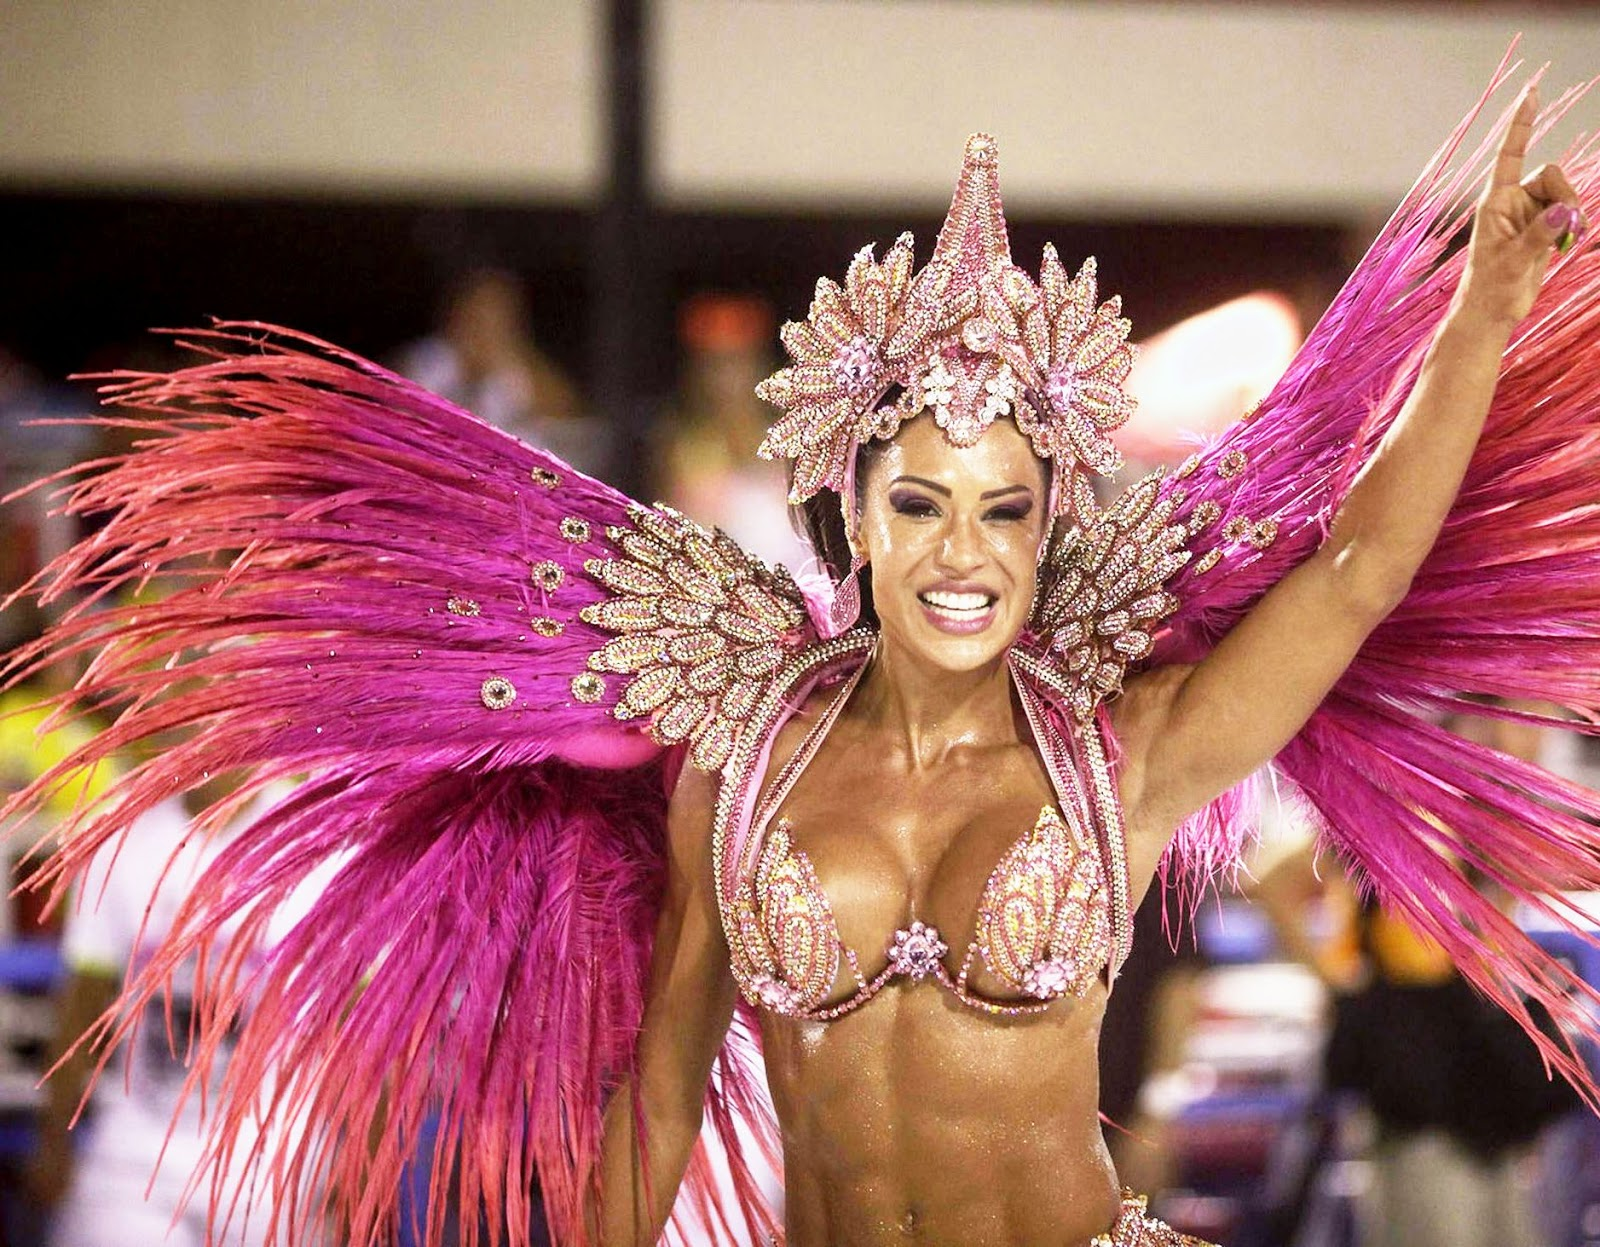 Rio Carnival 2013 - Samba heat: Scantily clad Brazilian babes flaunt their assets as they dance night away